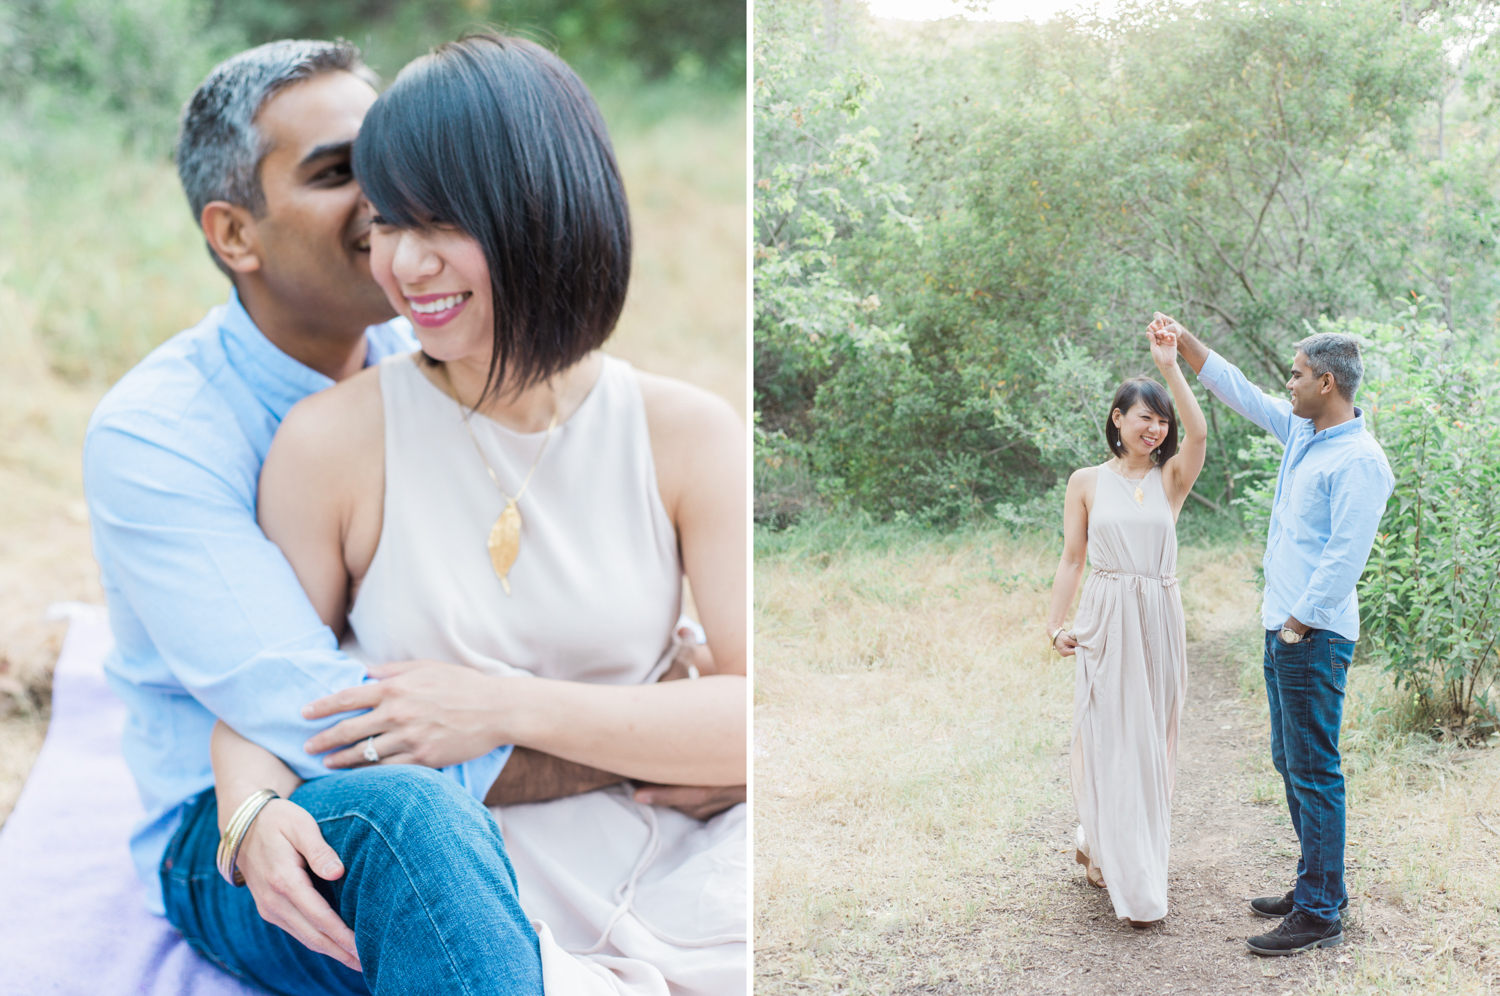 tina&sahil_solstice_canyon_engagement_session_photography_los_angeles_wedding_photographer-15.jpg